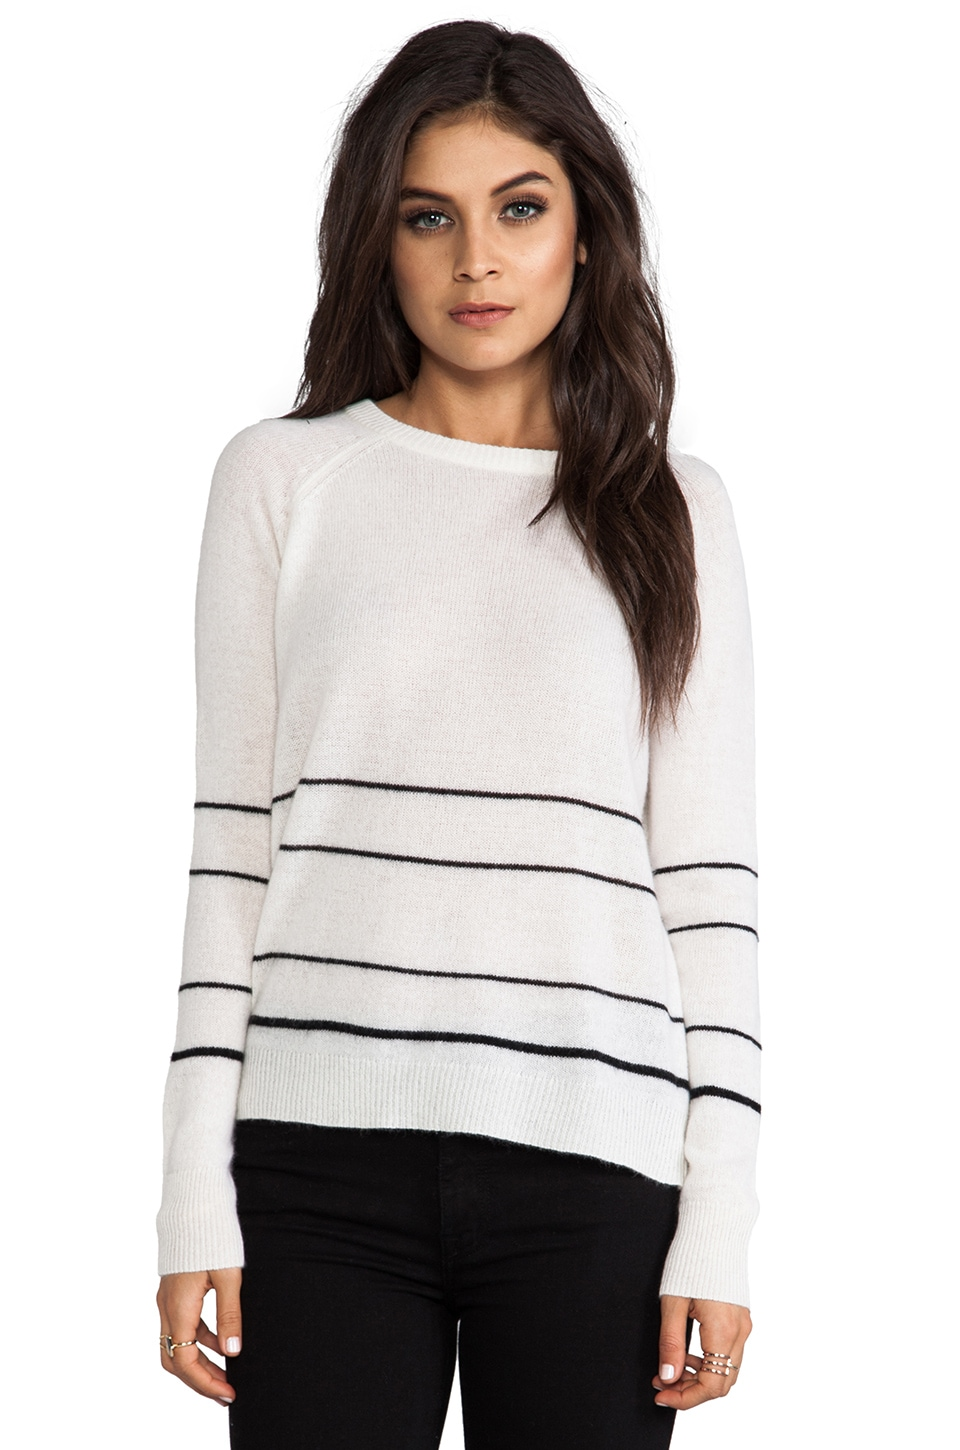 360 Sweater Gia Cashmere Stripe Sweater in Ivory & Black Stripe